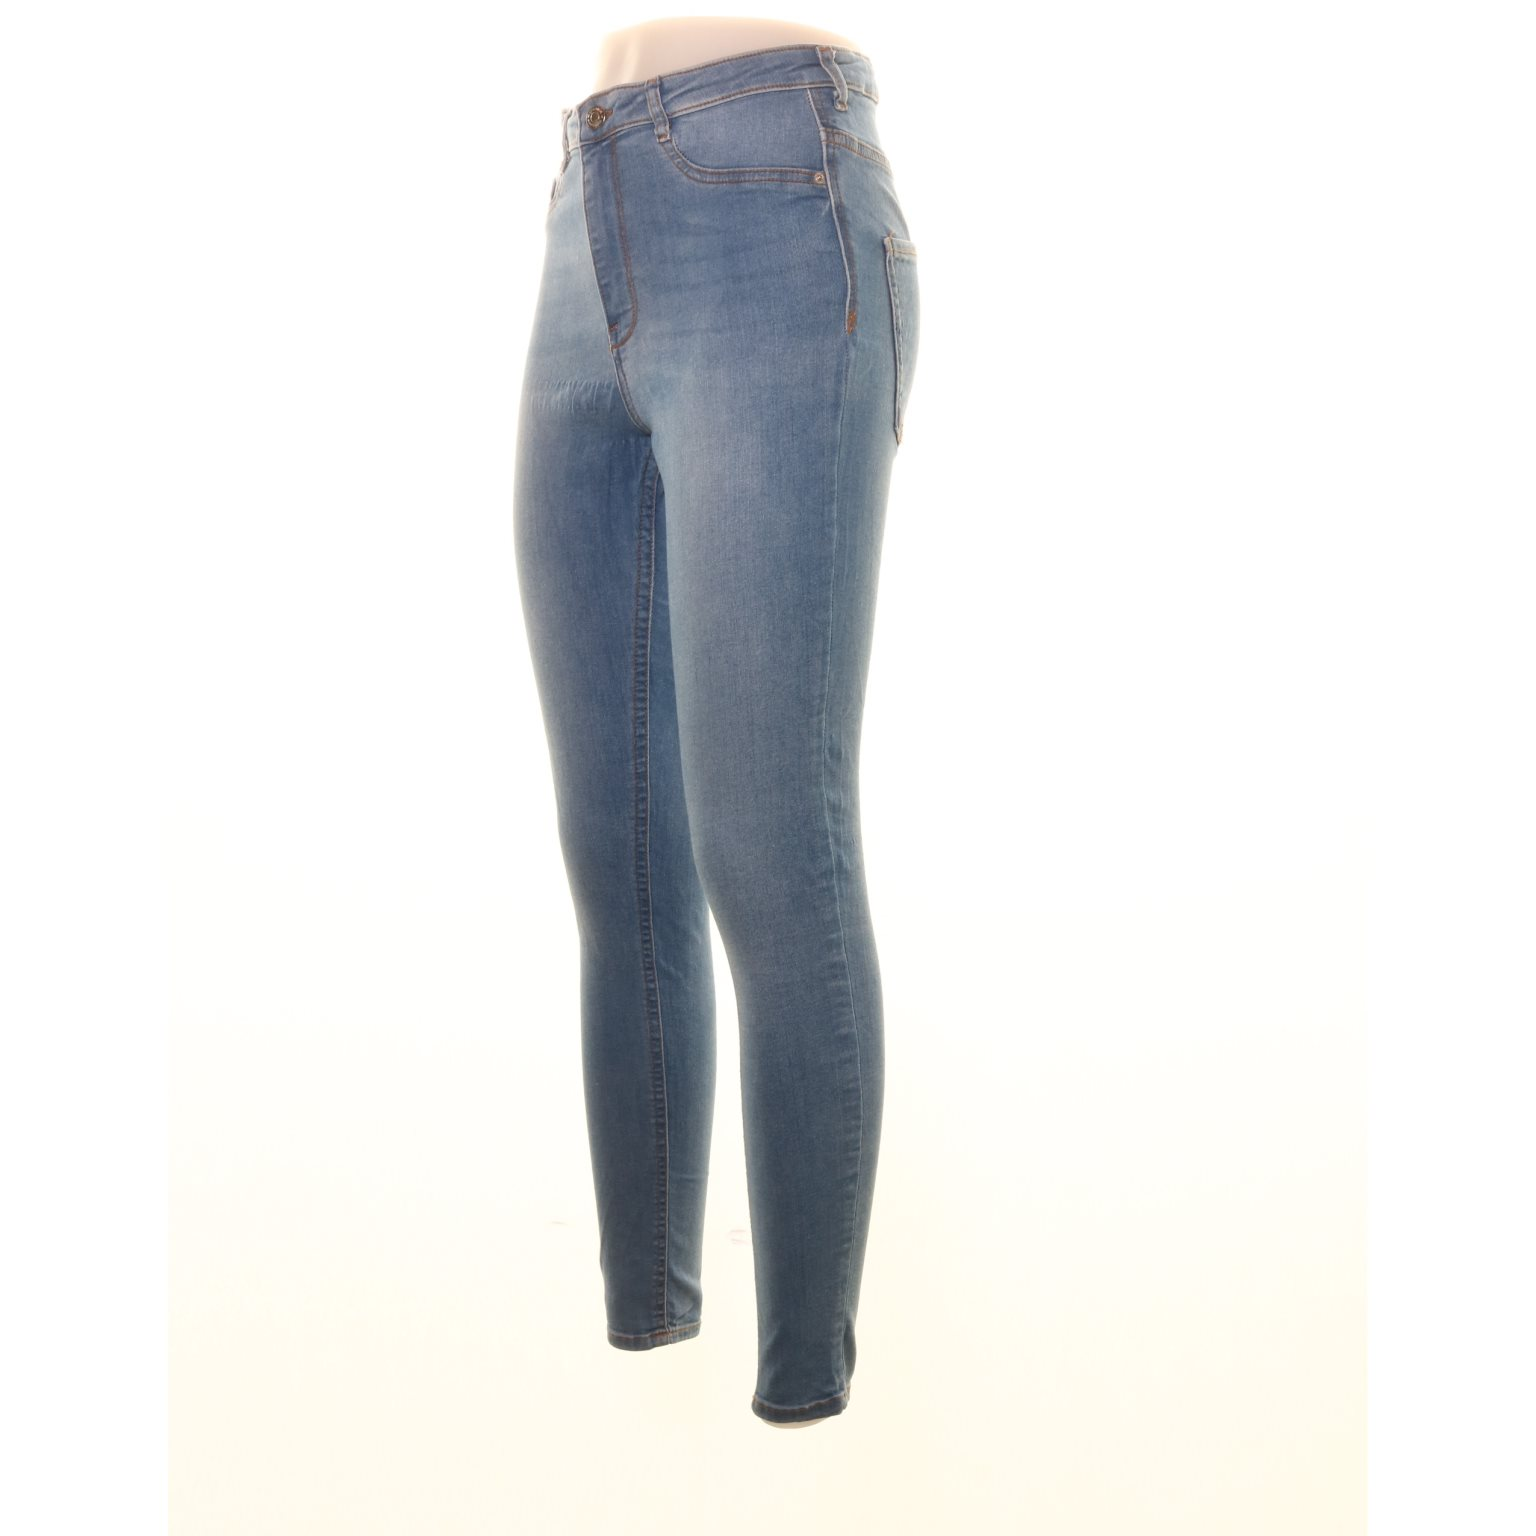 c09c9f41cbe0 ... Ljusblå Perfect Jeans Jeans Jeans Gina Tricot, Jeans, Strl: L, Molly,  ...